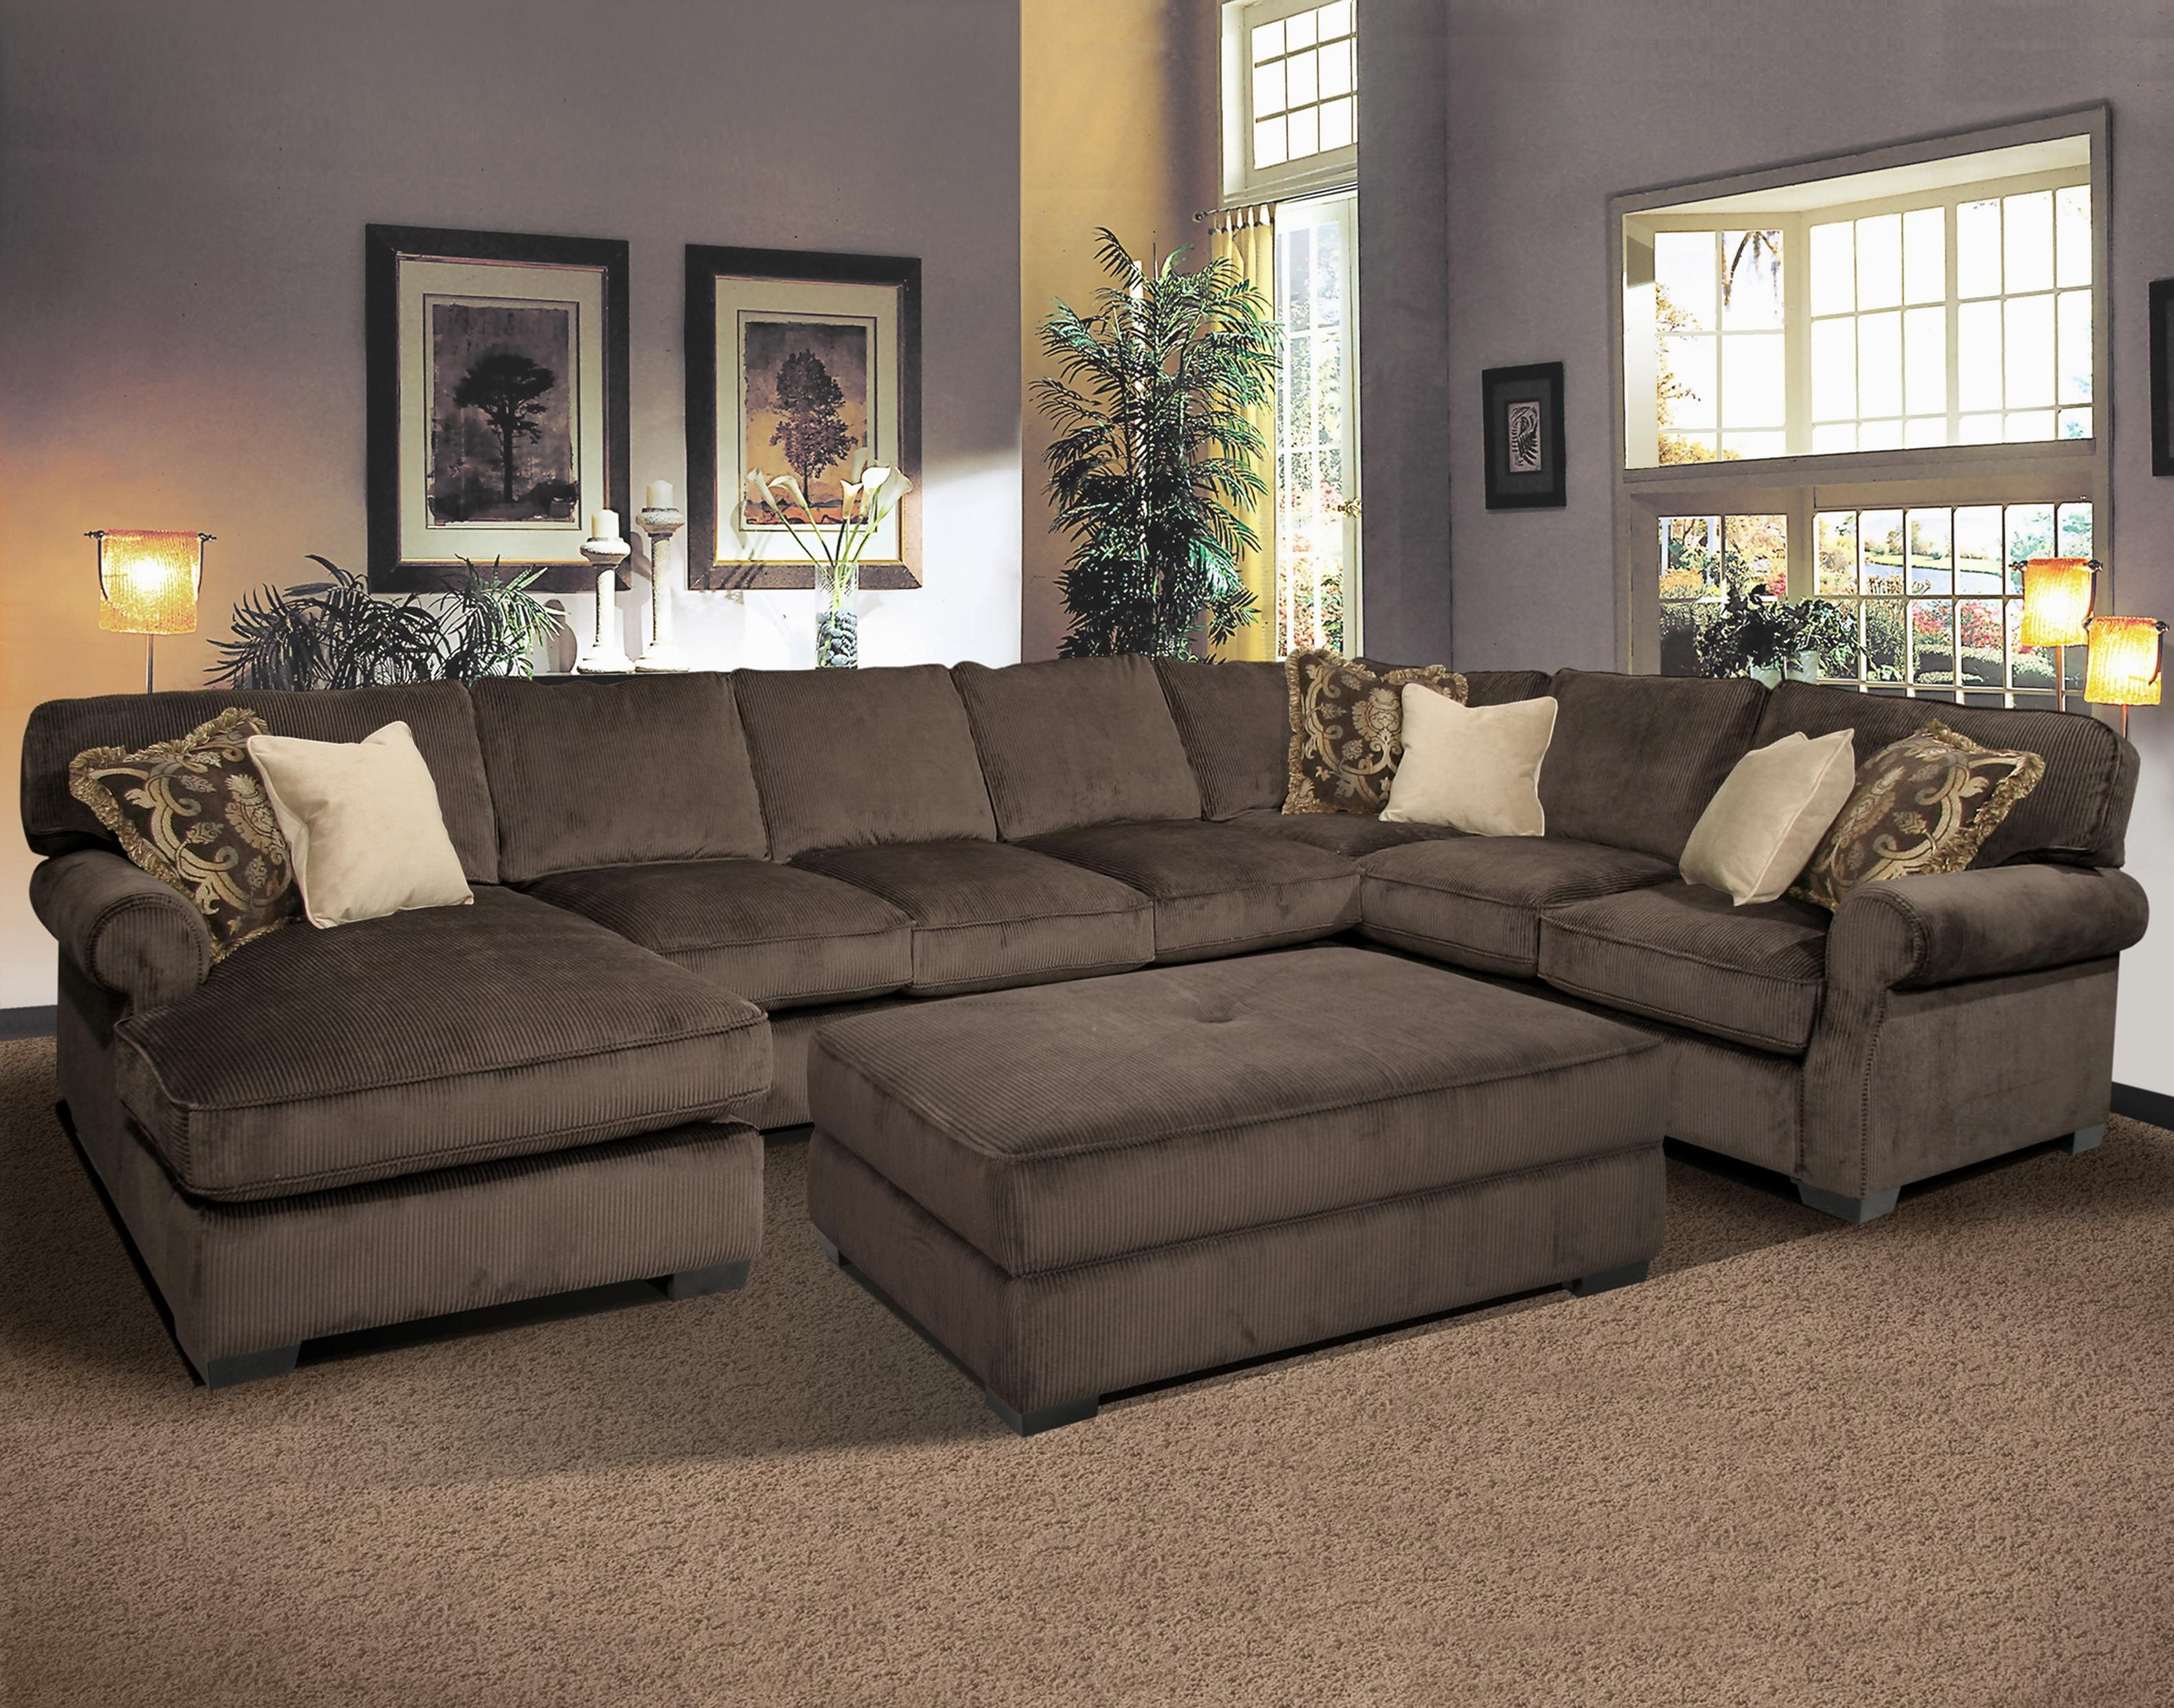 Preferred Furniture : Sectional Sofa With Recliner And Ottoman Grand Island Intended For Sectional Sofas With Oversized Ottoman (View 3 of 20)